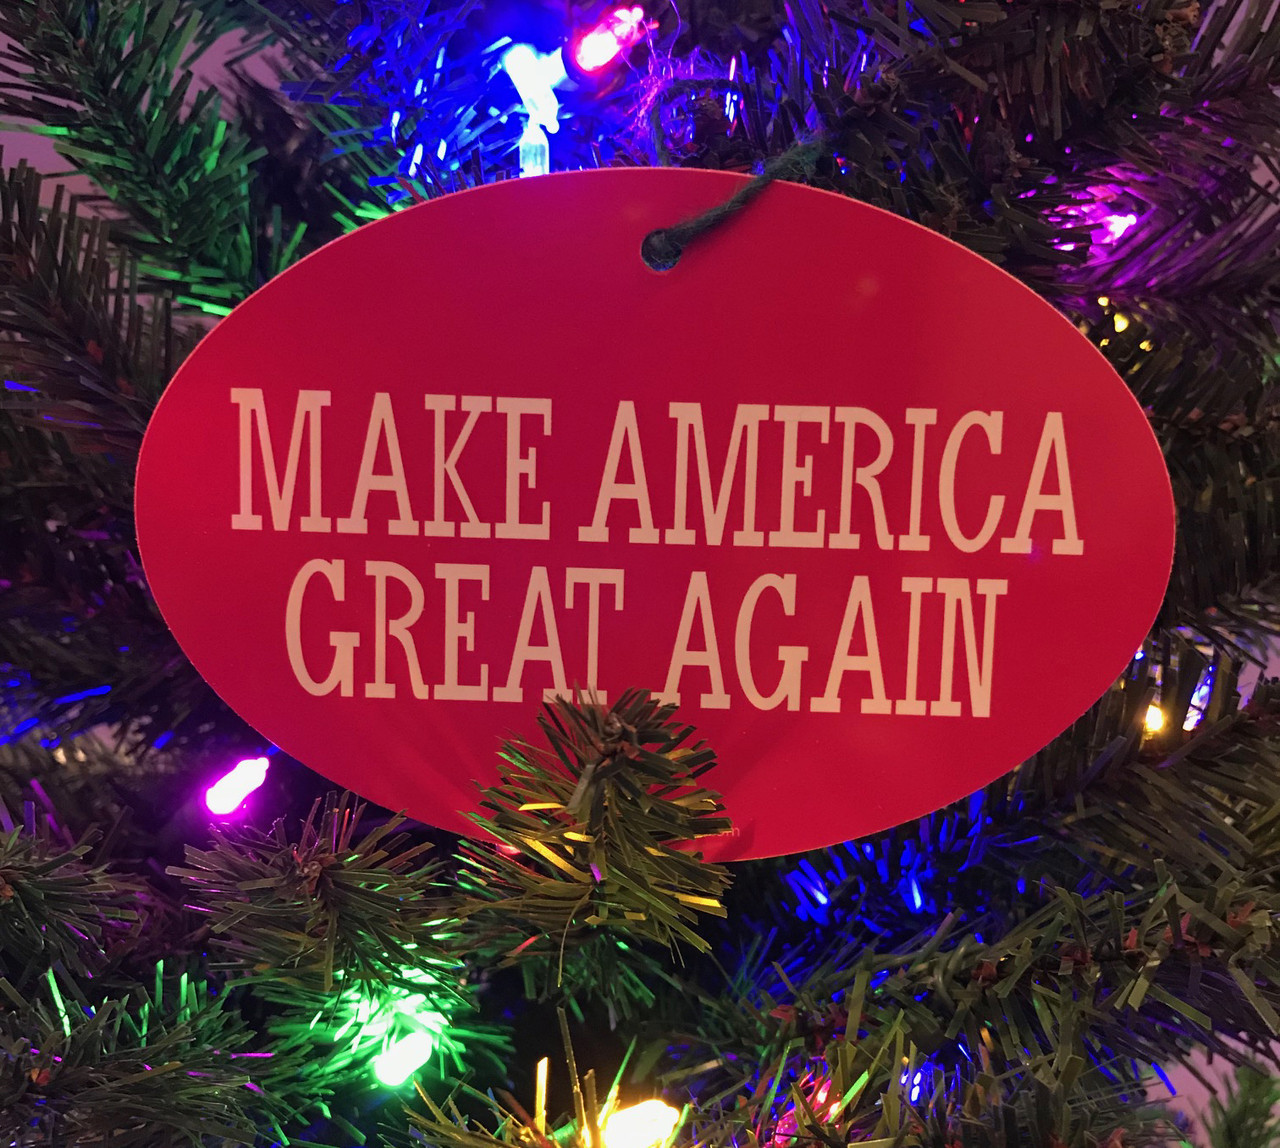 f81ffcf5669 PRESIDENT DONALD TRUMP - MAKE AMERICA GREAT AGAIN 4x6 Inch Christmas Tree  Ornament. Price   3.99. Image 1